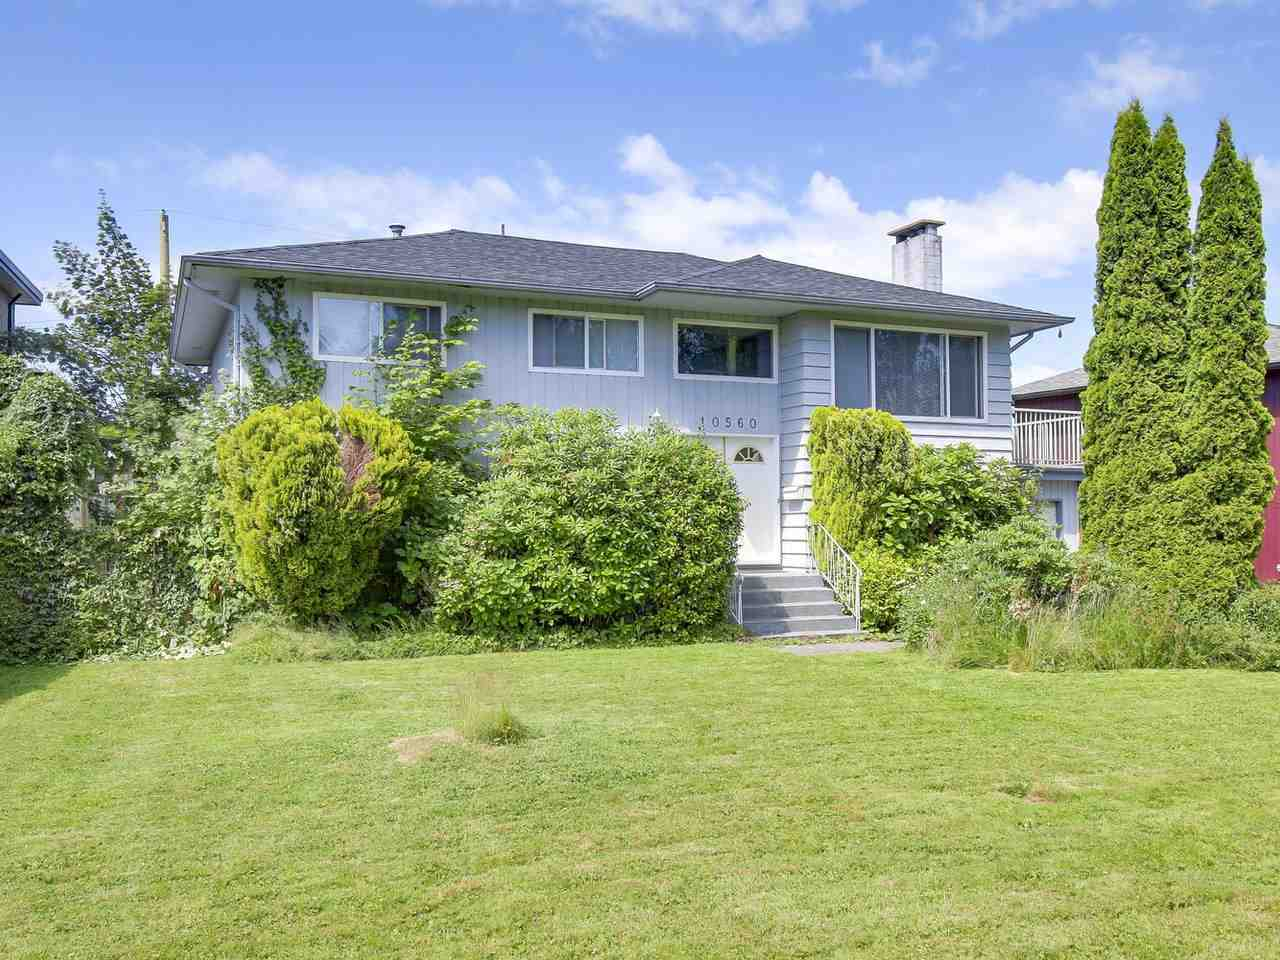 Detached at 10560 AINTREE CRESCENT, Richmond, British Columbia. Image 1